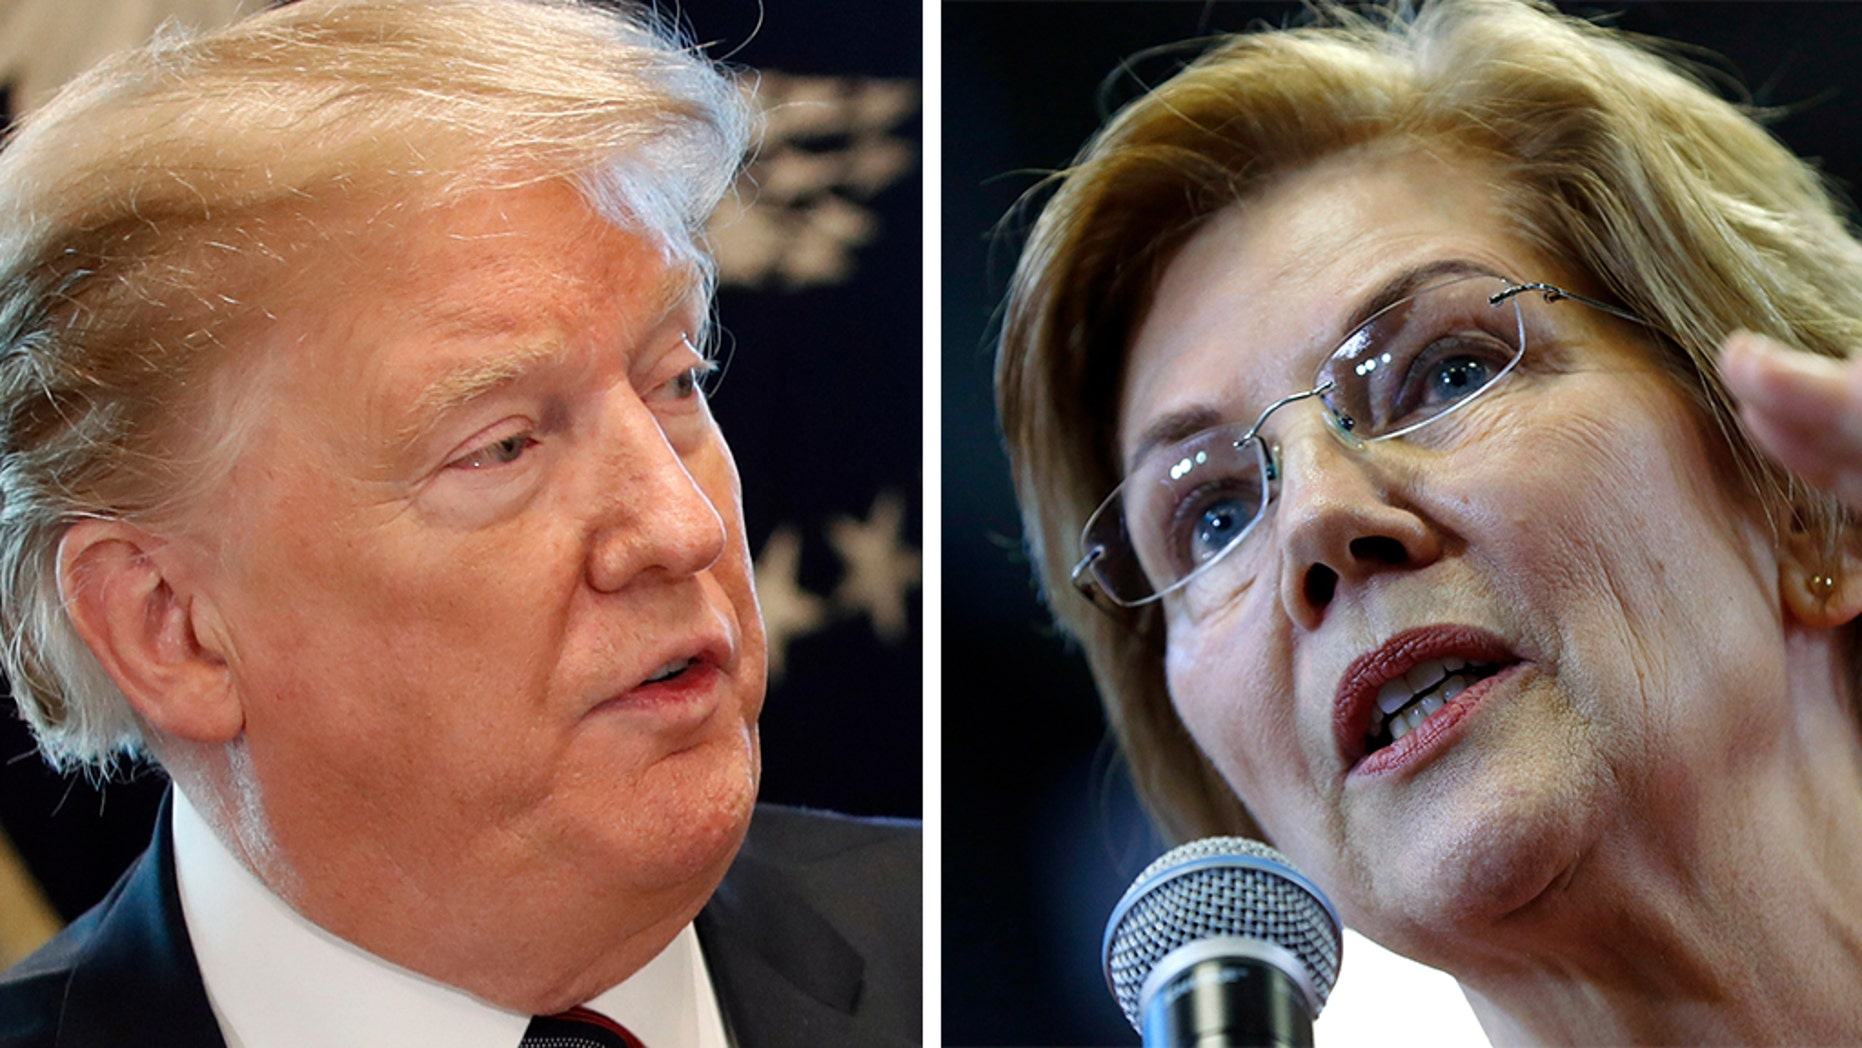 Trump's 'Wounded Knee' tweet over Warren sparks anger